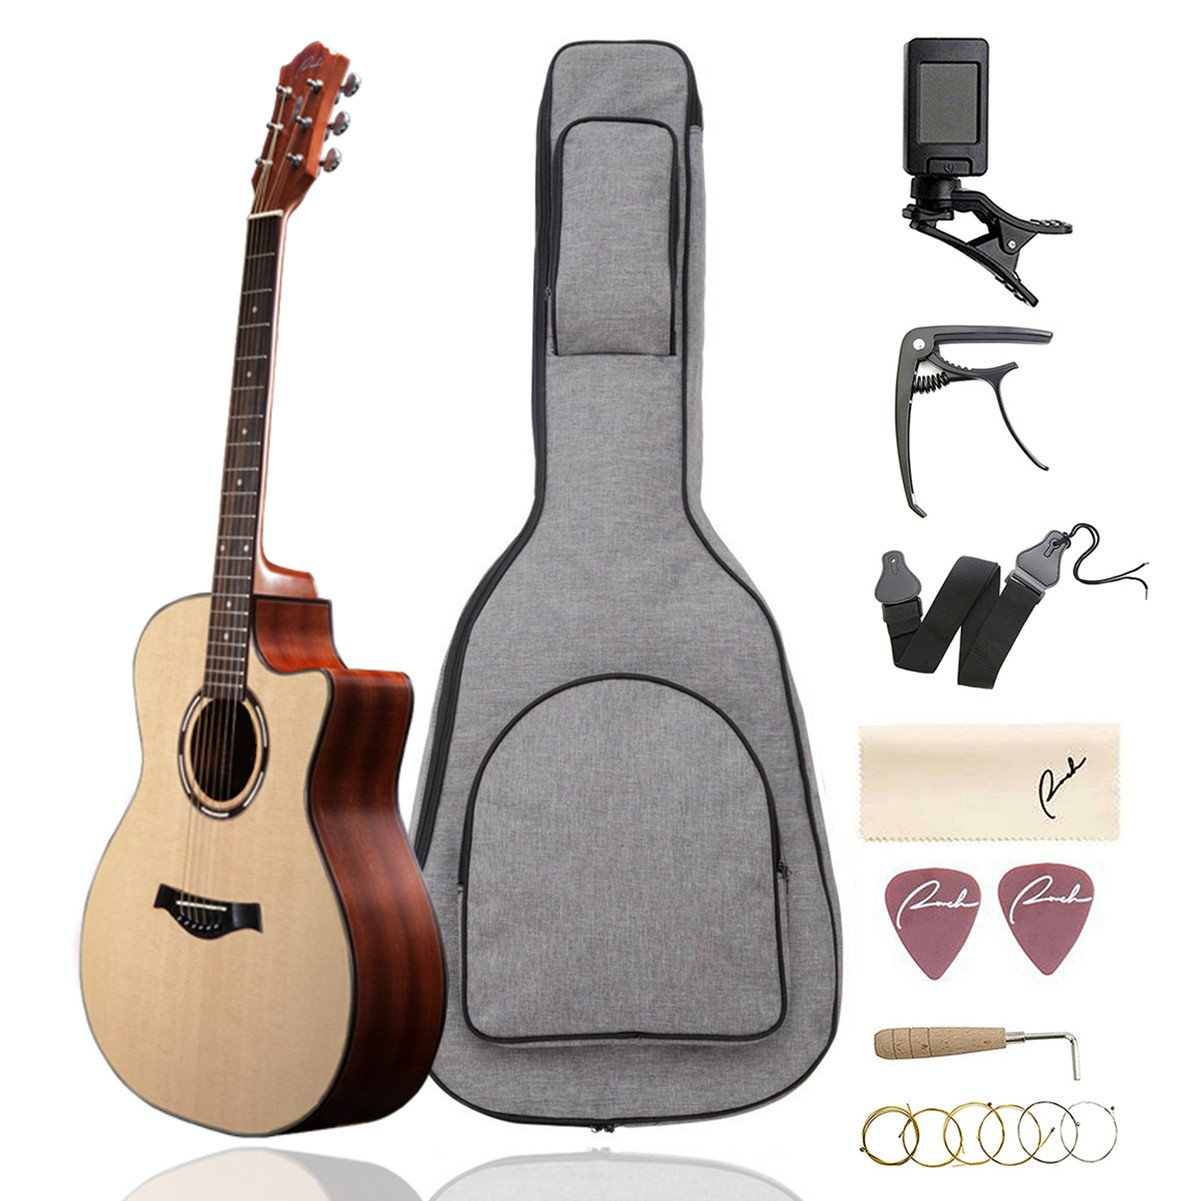 Guitar Capo Acoustic and Electric Guitars Capo - Universal Single Handed Ukuleles, Mandolin & Banjo Instruments Capo - Free 3 Guitar Picks | Cinnamon 4334246648